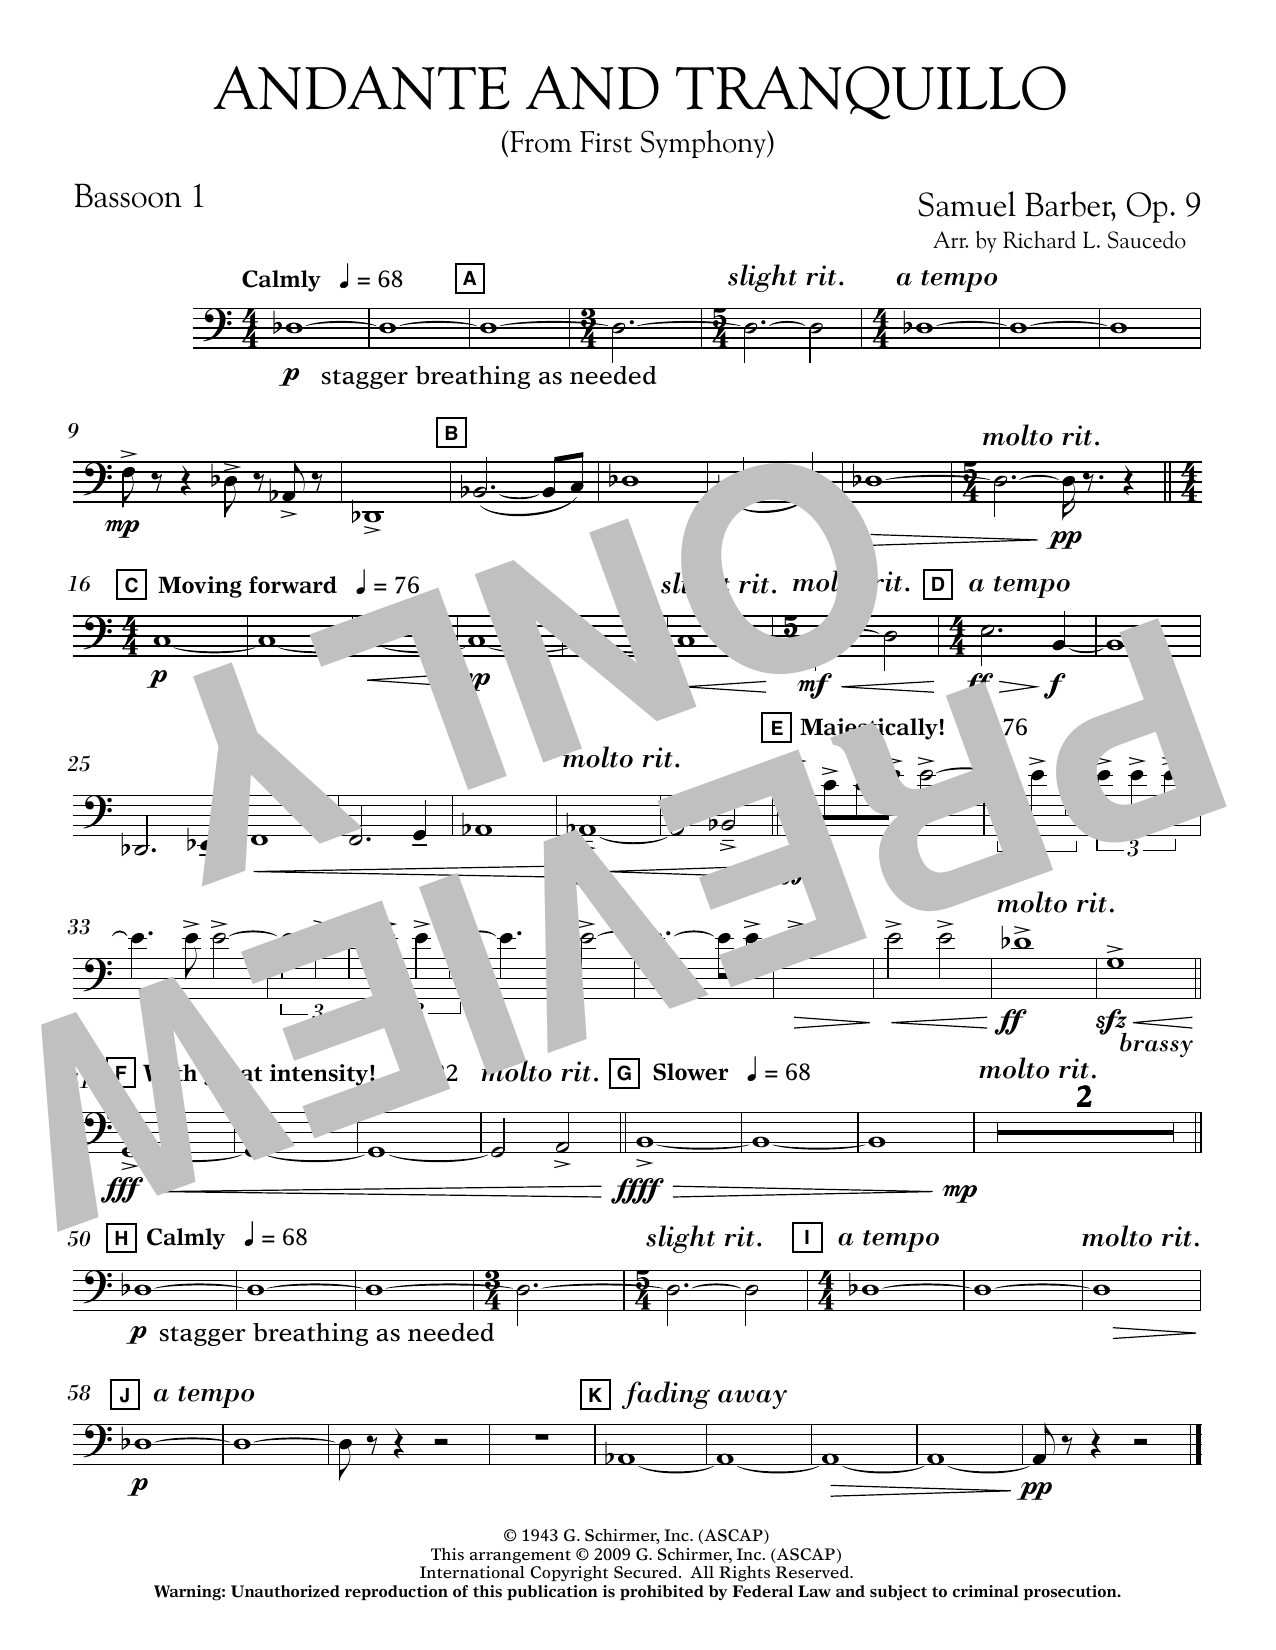 Andante and Tranquillo (from First Symphony) - Bassoon 1